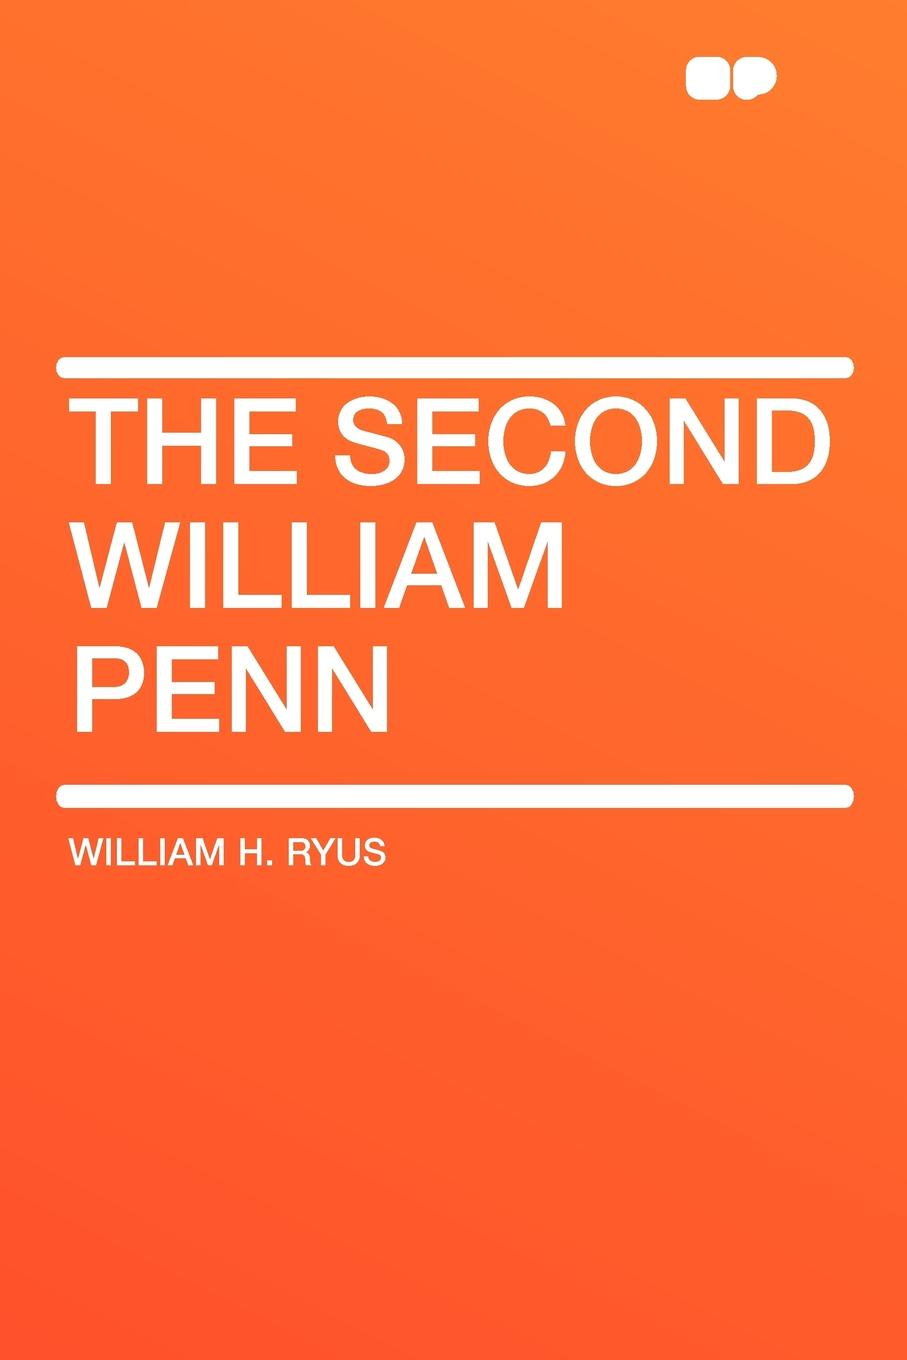 лучшая цена William H. Ryus The Second William Penn